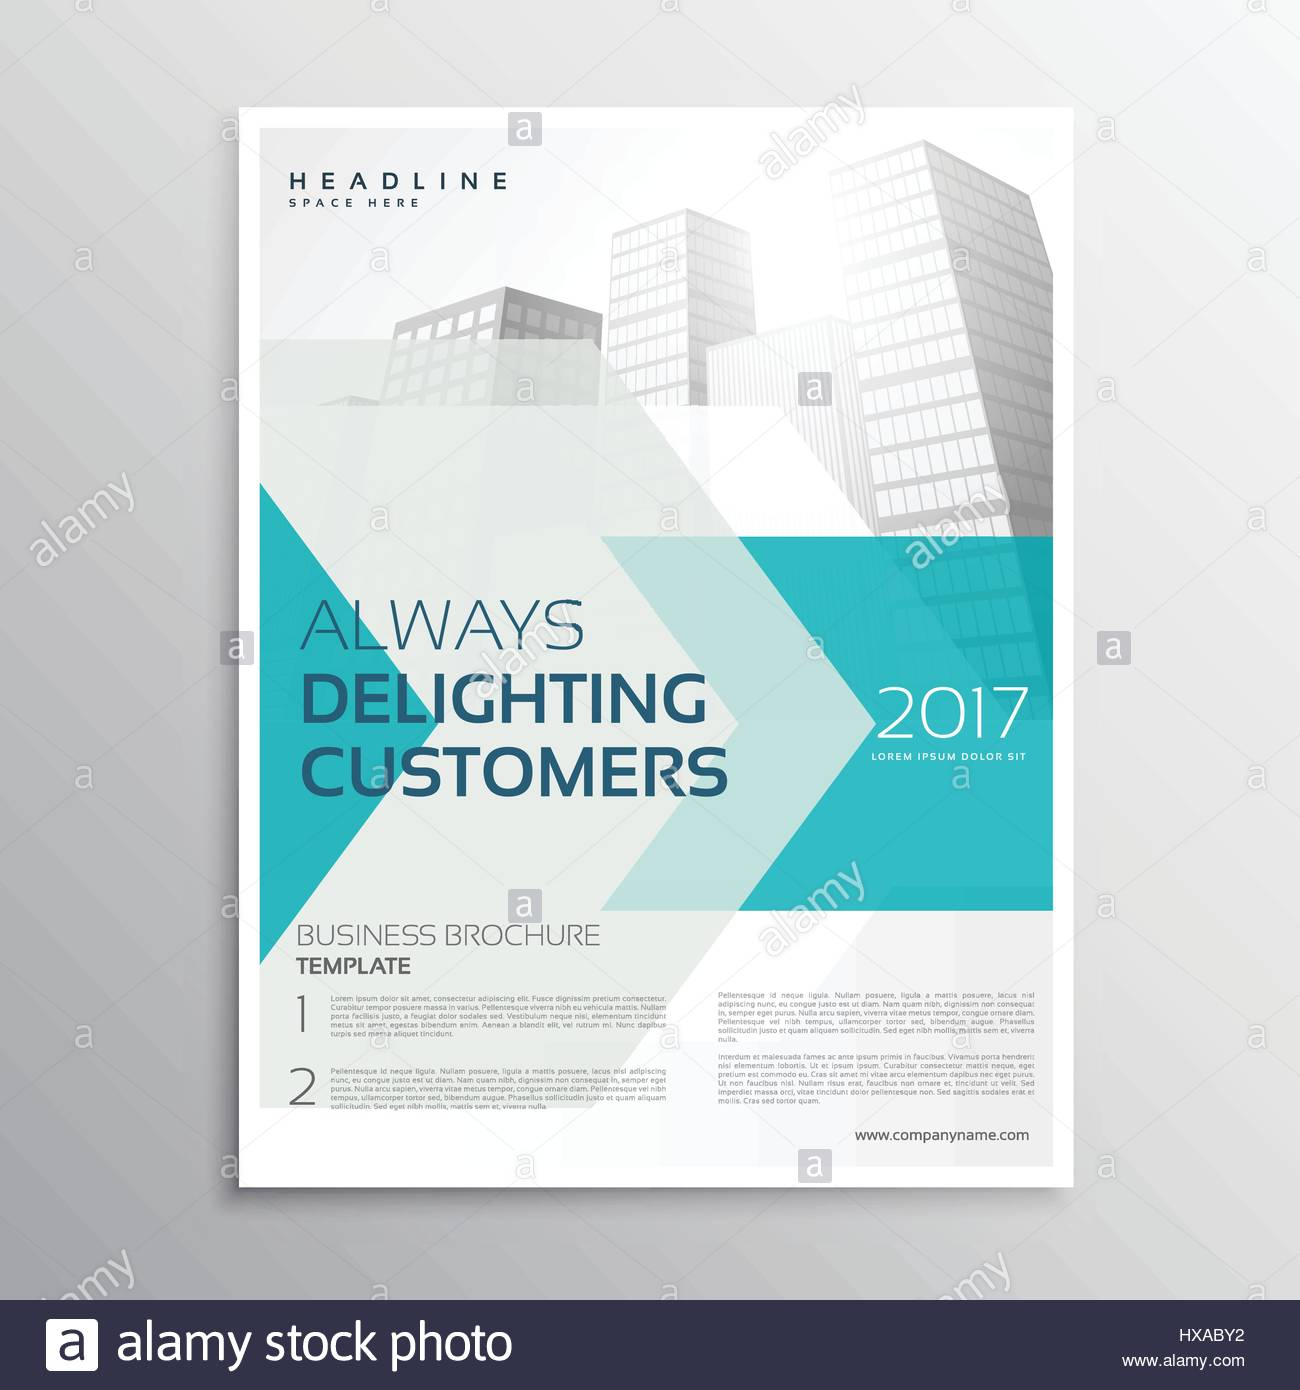 Business brochure leaflet template with arrow and geometric shape business brochure leaflet template with arrow and geometric shape and buildings cheaphphosting